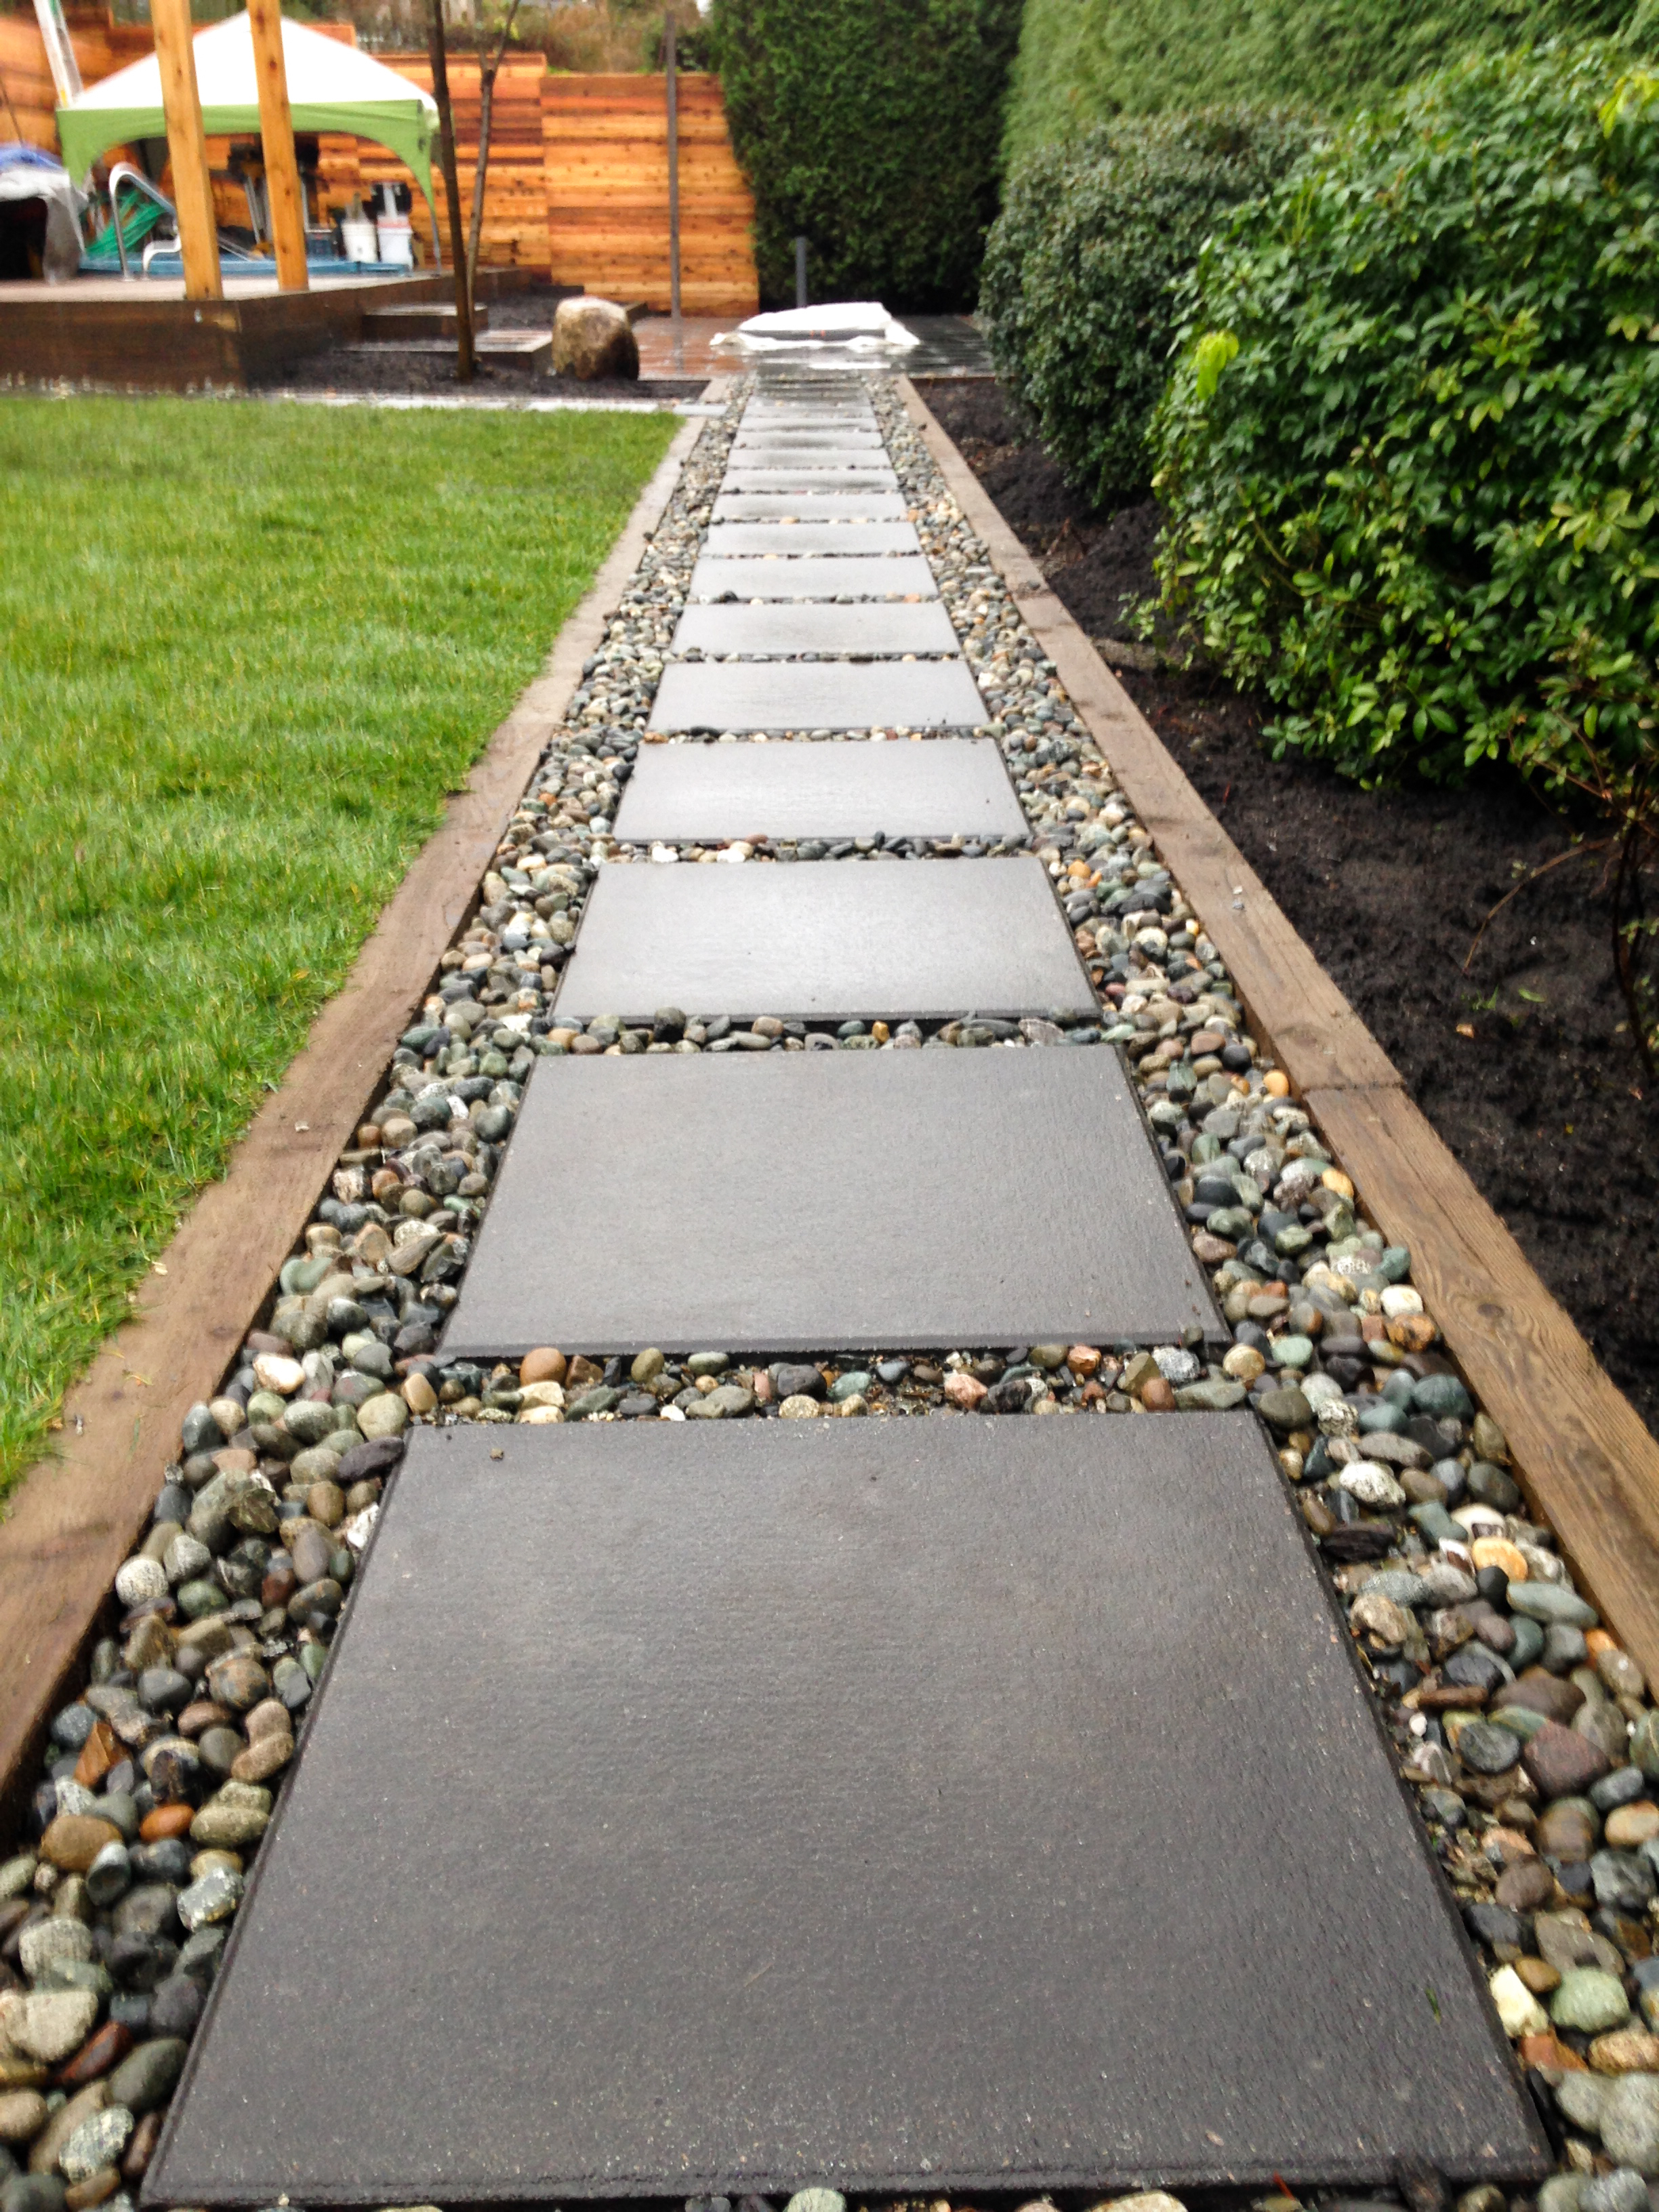 Concrete slab path with river rock